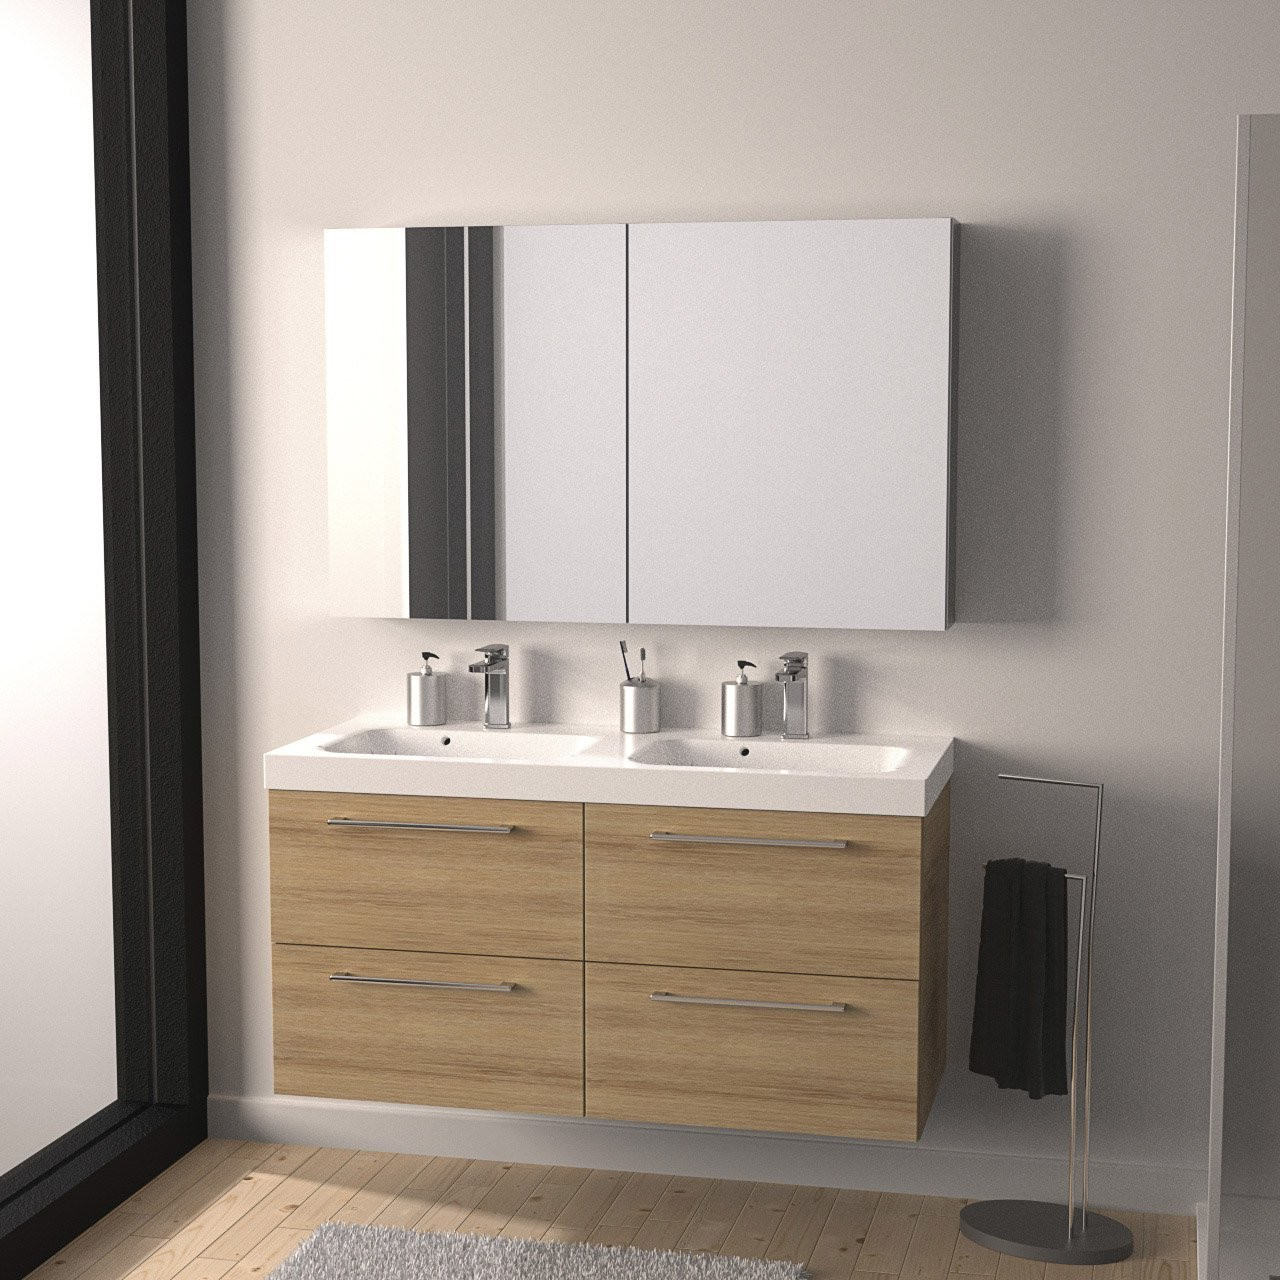 miroir salle de bain leroy merlin fashion designs. Black Bedroom Furniture Sets. Home Design Ideas